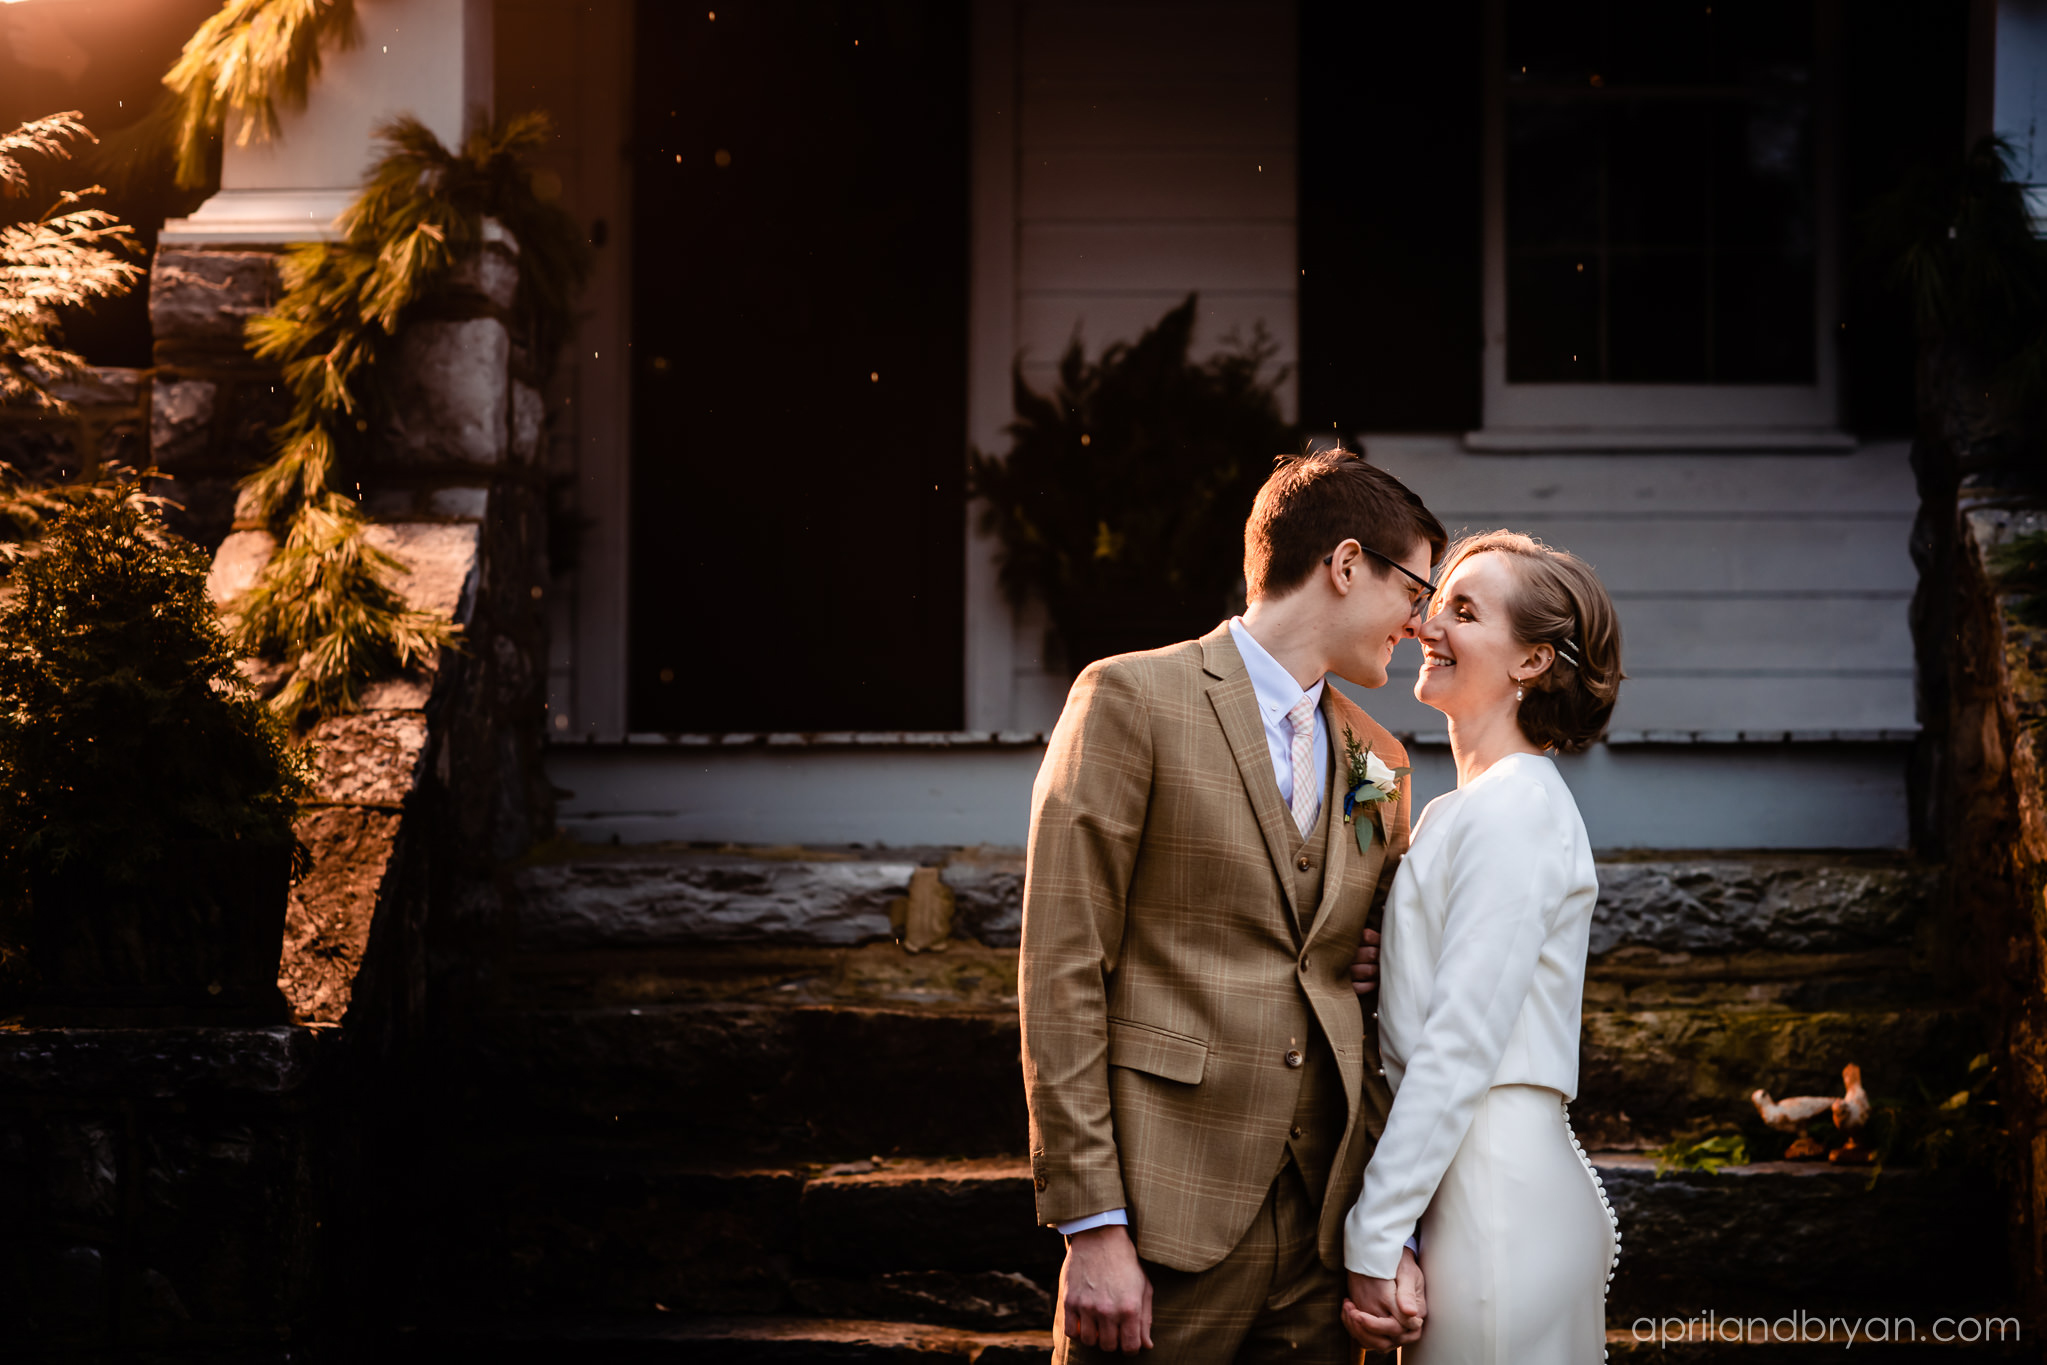 Looking like a couple straight out of the 40s, the two stand in front of their Mount Joy home. Hannah and Ethan Farrell had their classic romantic styled wedding held at their home in Mount Joy, followed by a reception at the catacombs underneath Bube's Brewery. Photographed by April & Bryan Photography, the couple had the opportunity to showcase their early 1900s style and accommodate a small guest list. Featured on Dream Weddings.